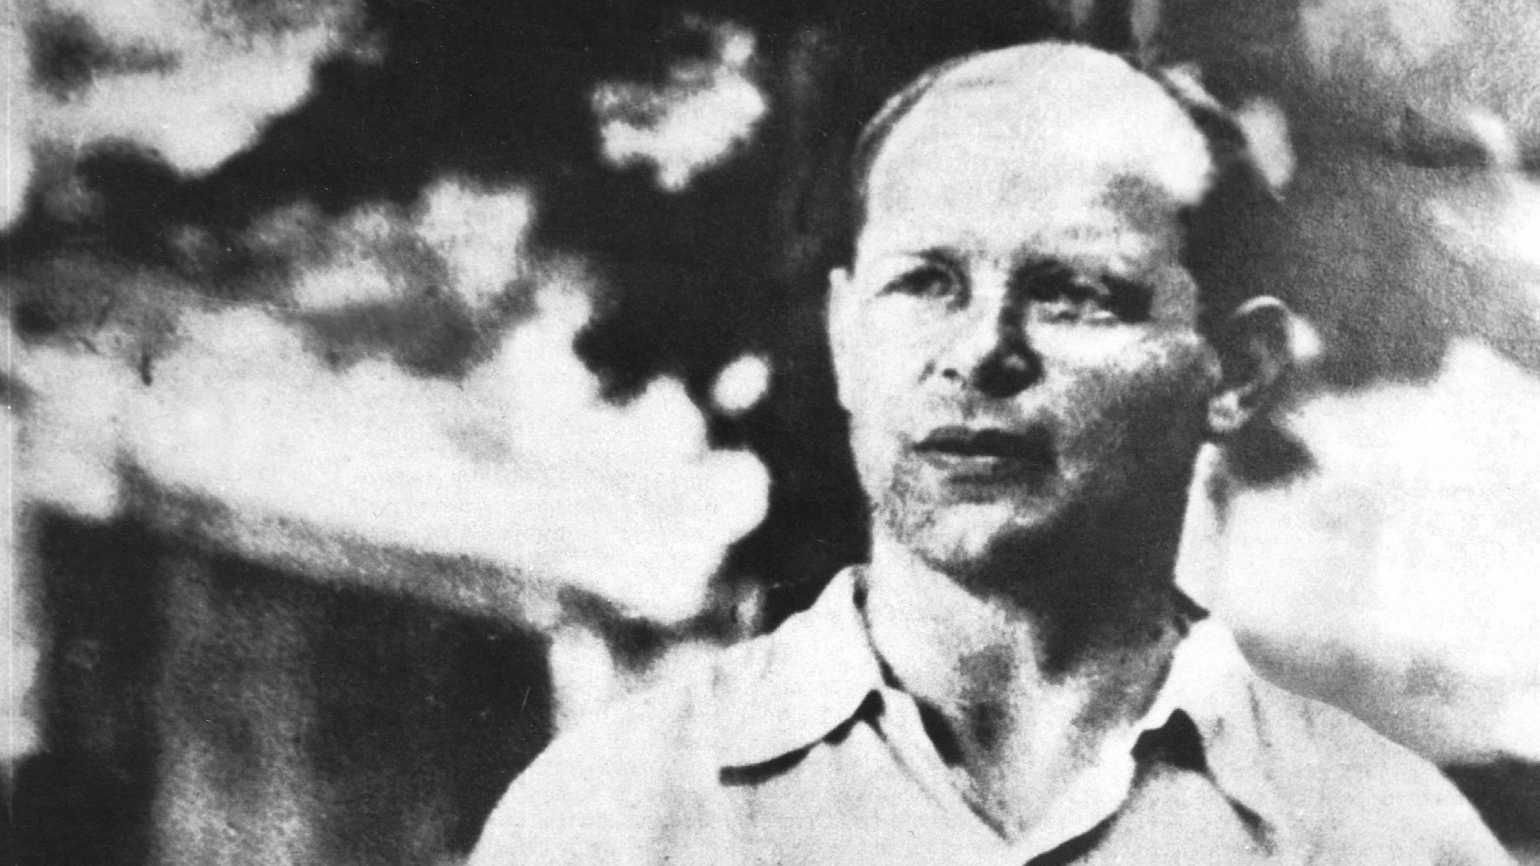 A black and white portrait of Dietrich Bonhoeffer.